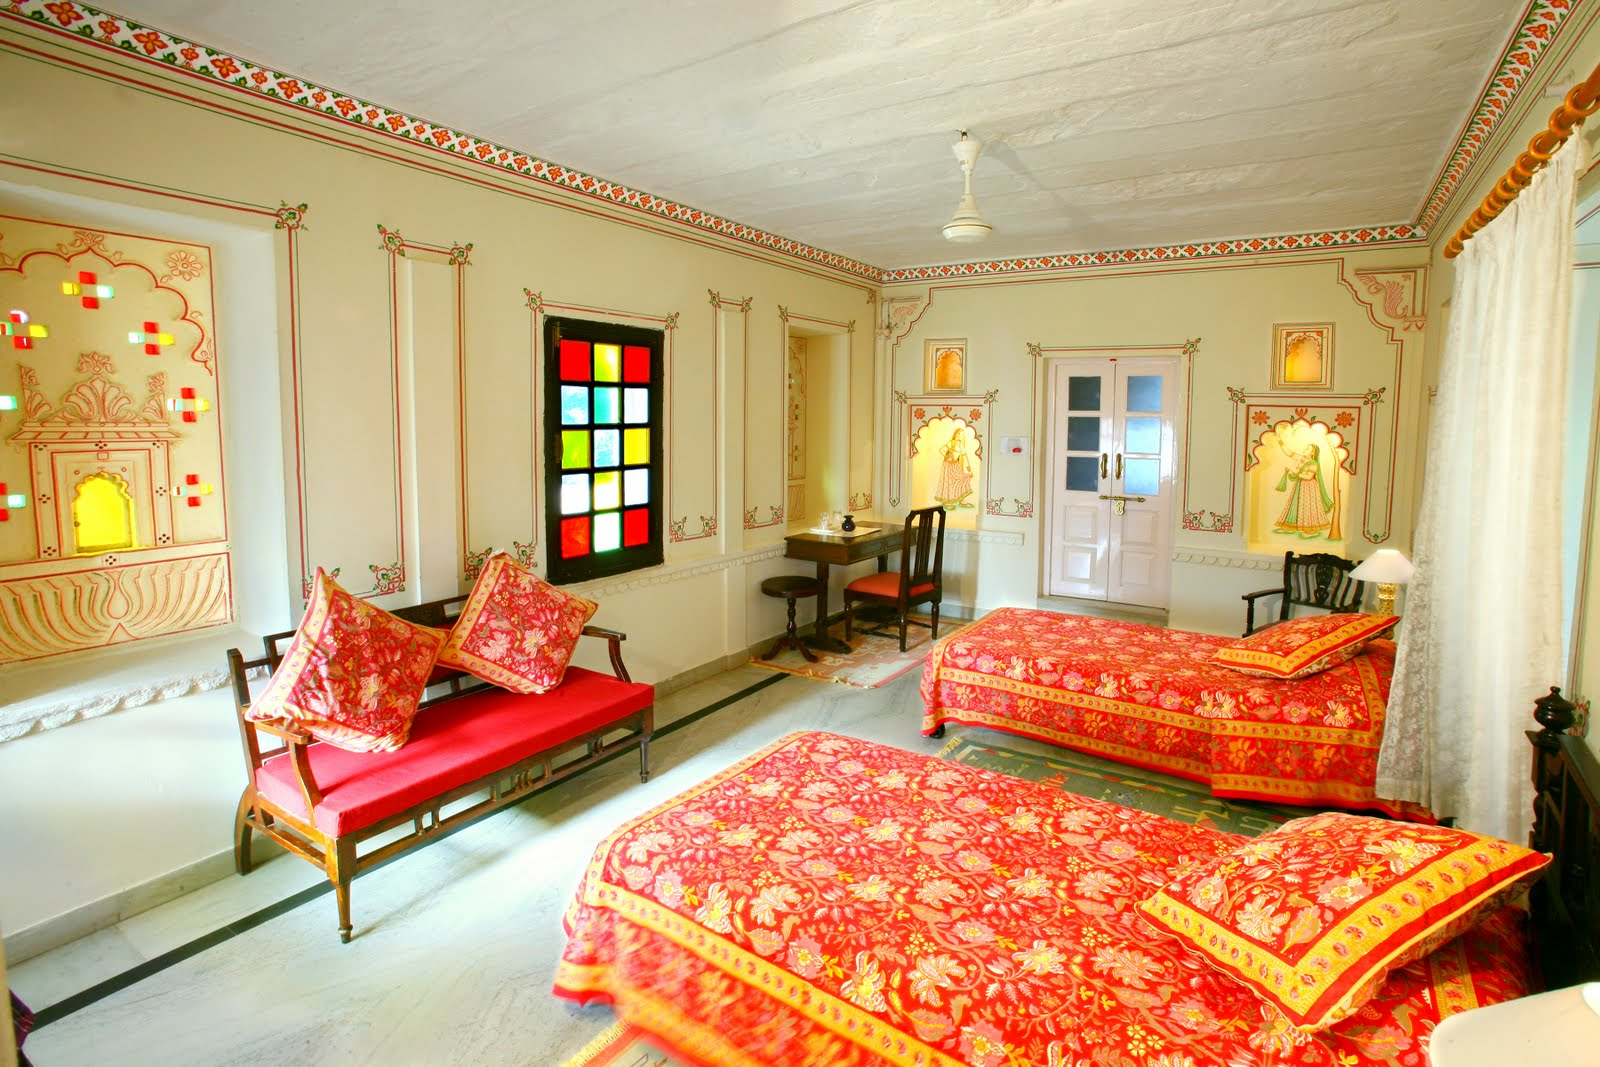 Rajasthani style interior design ideas palace interiors for Interior decoration images